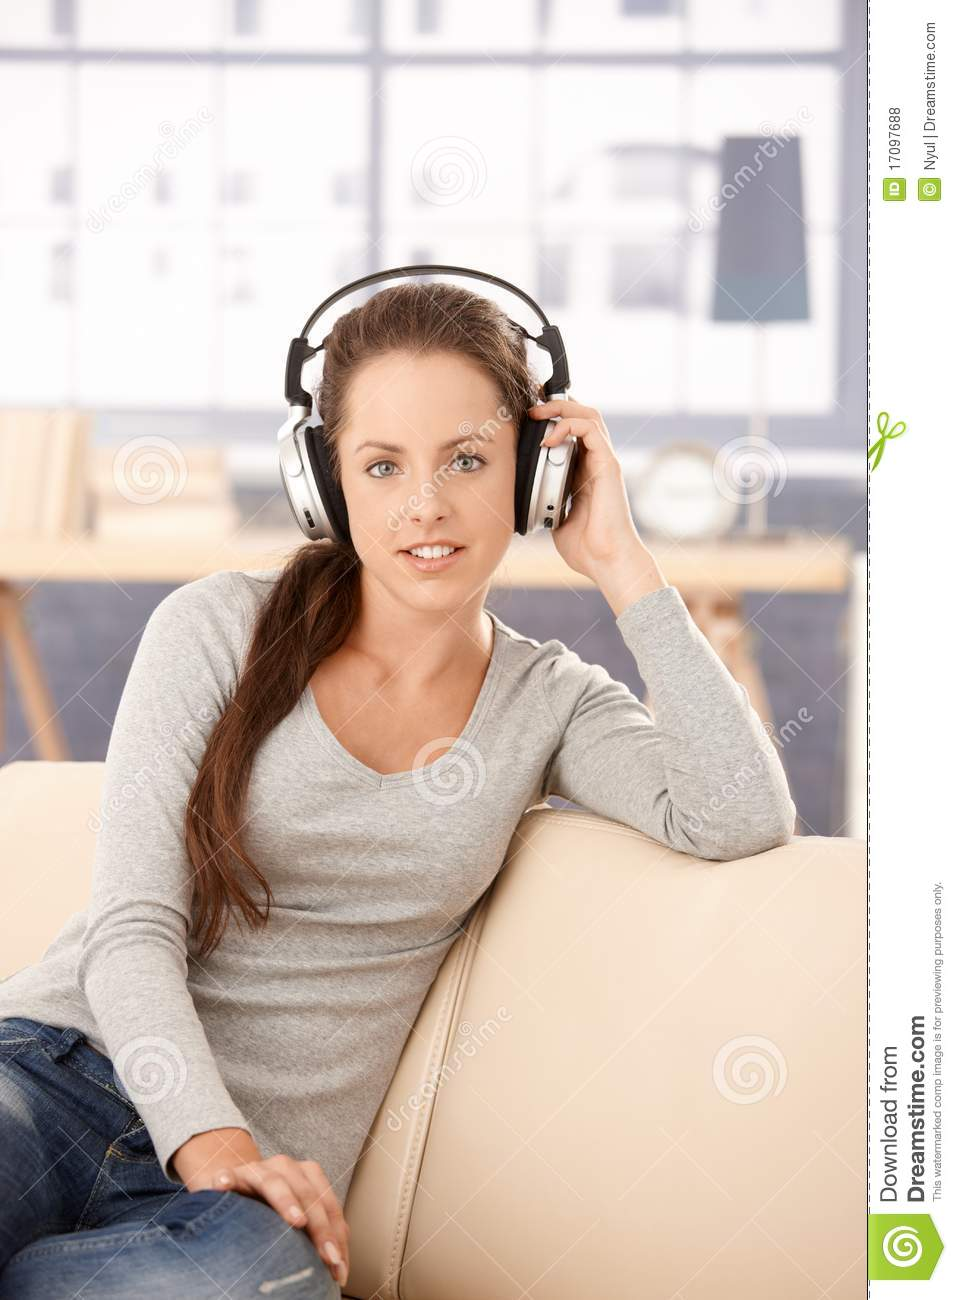 Attractive girl listening to music at home smiling